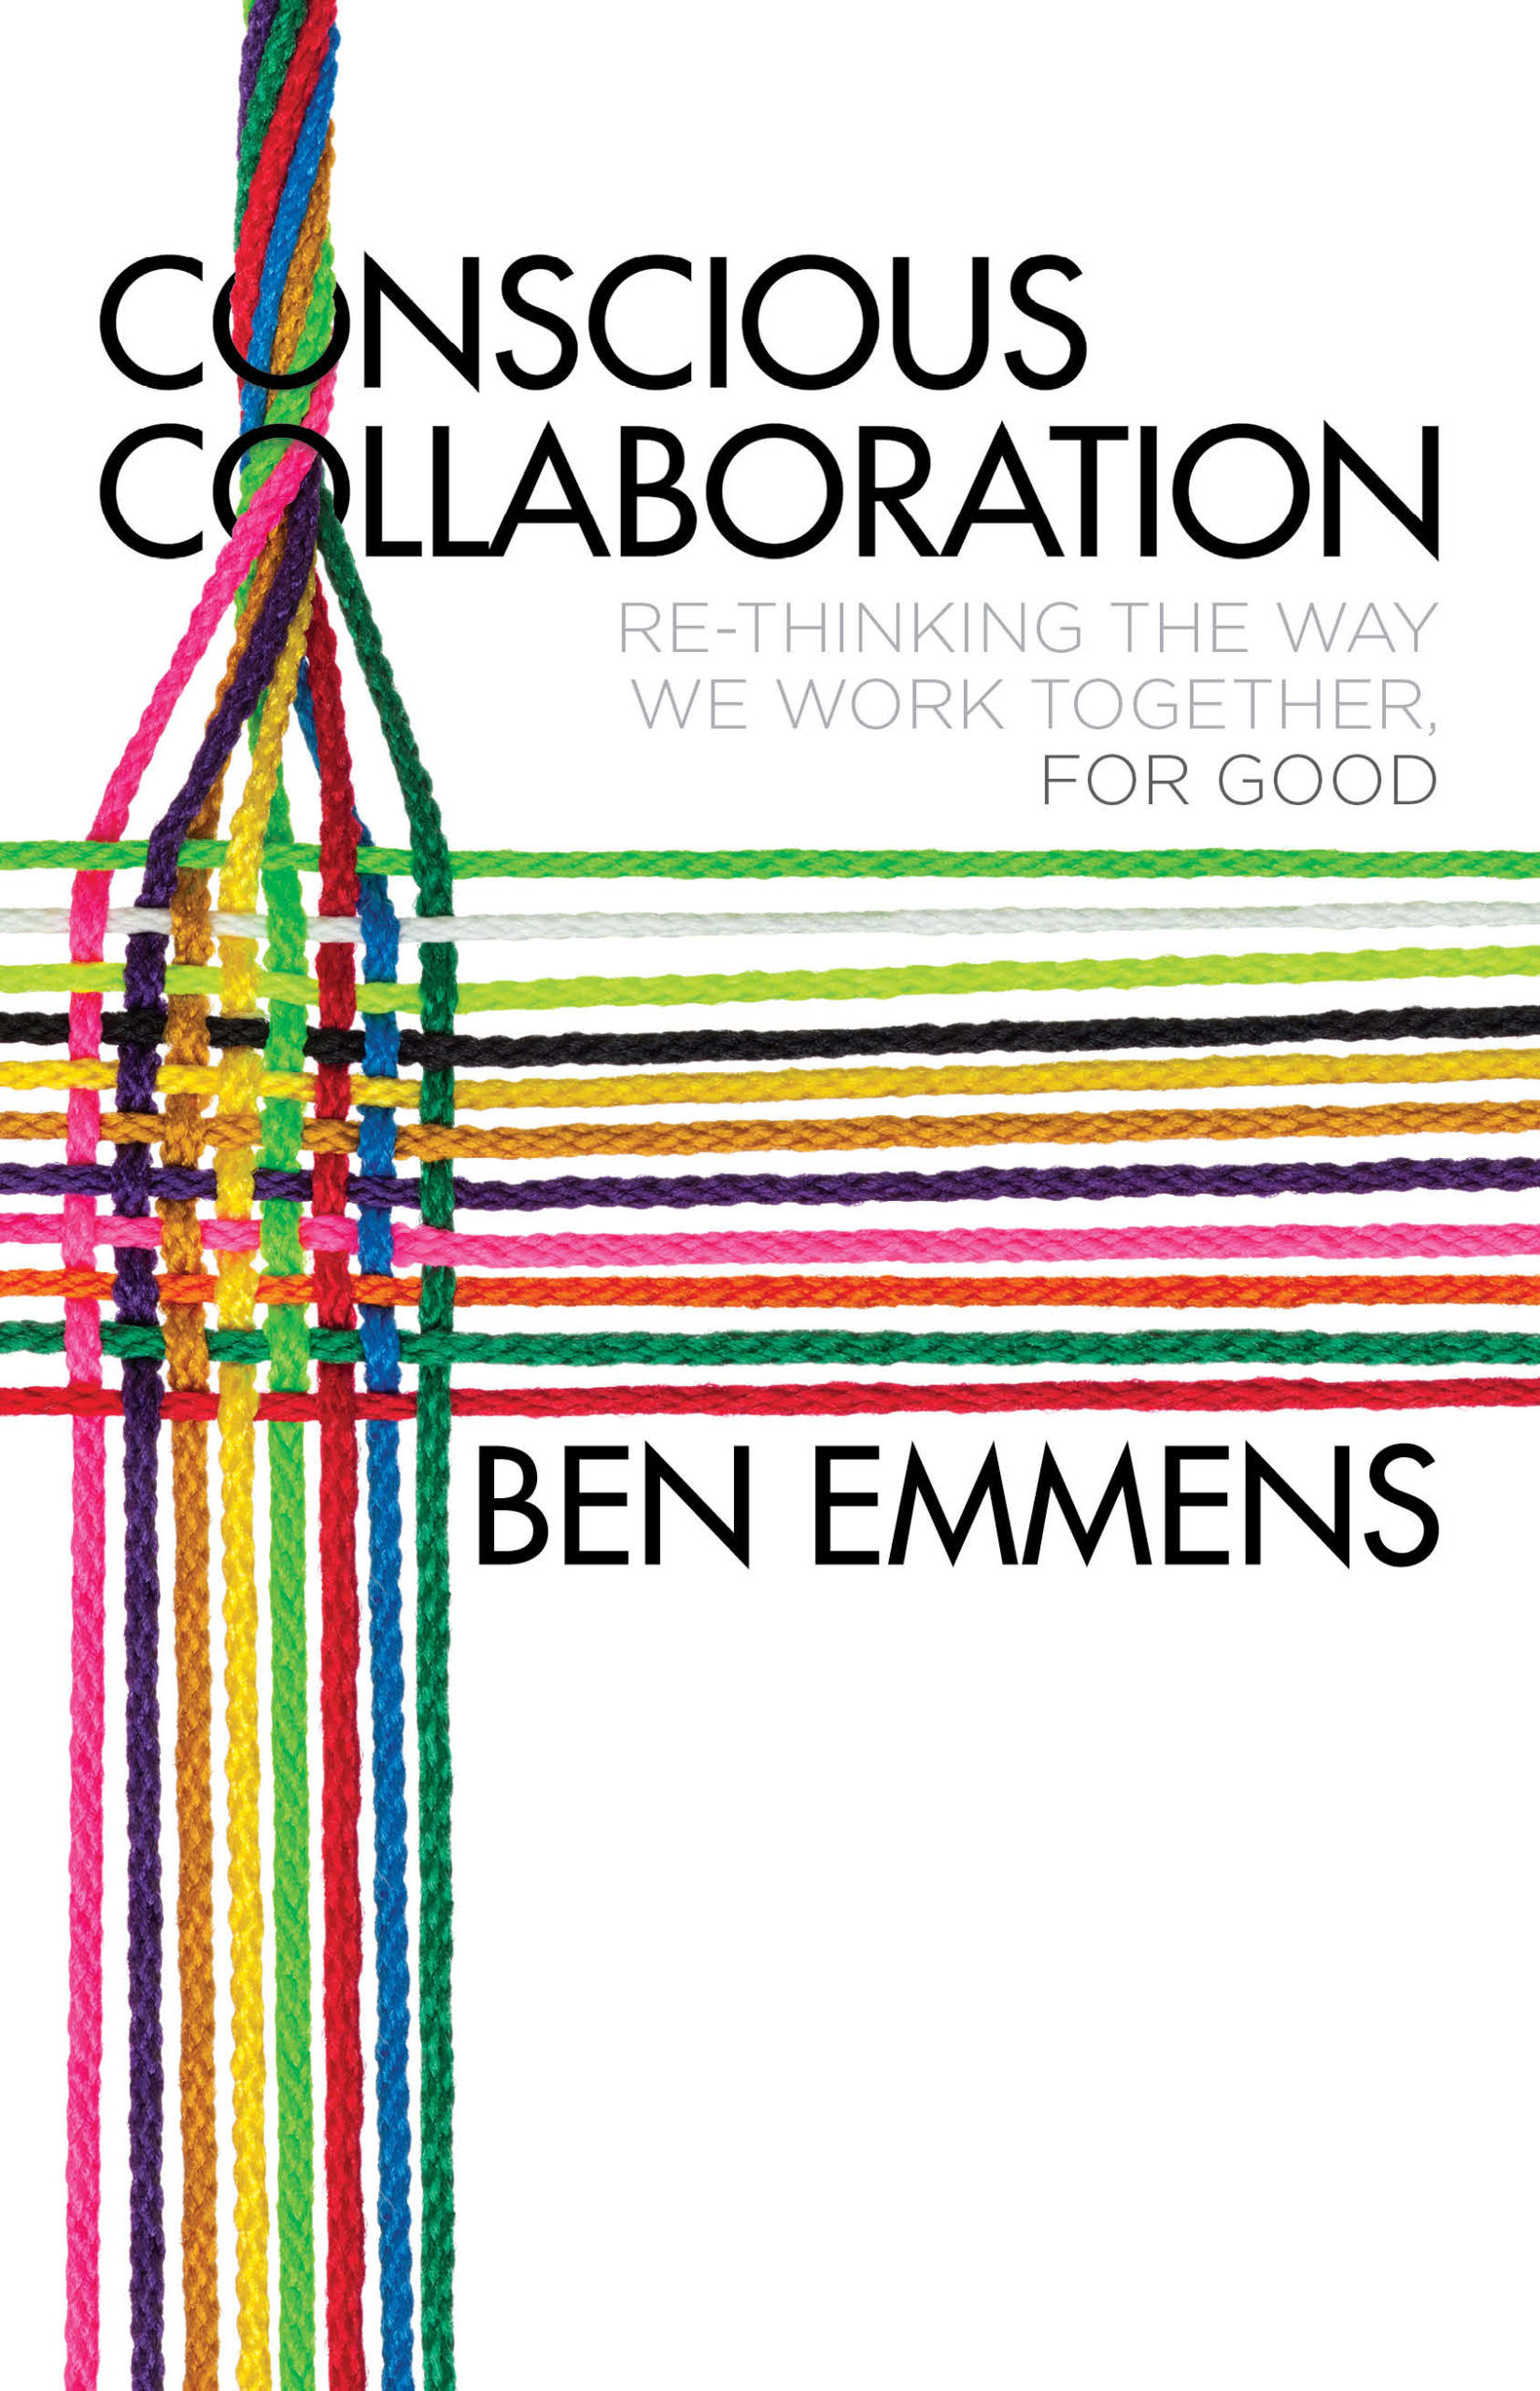 Conscious Collaboration: Rethinking the way we work together FOR GOOD